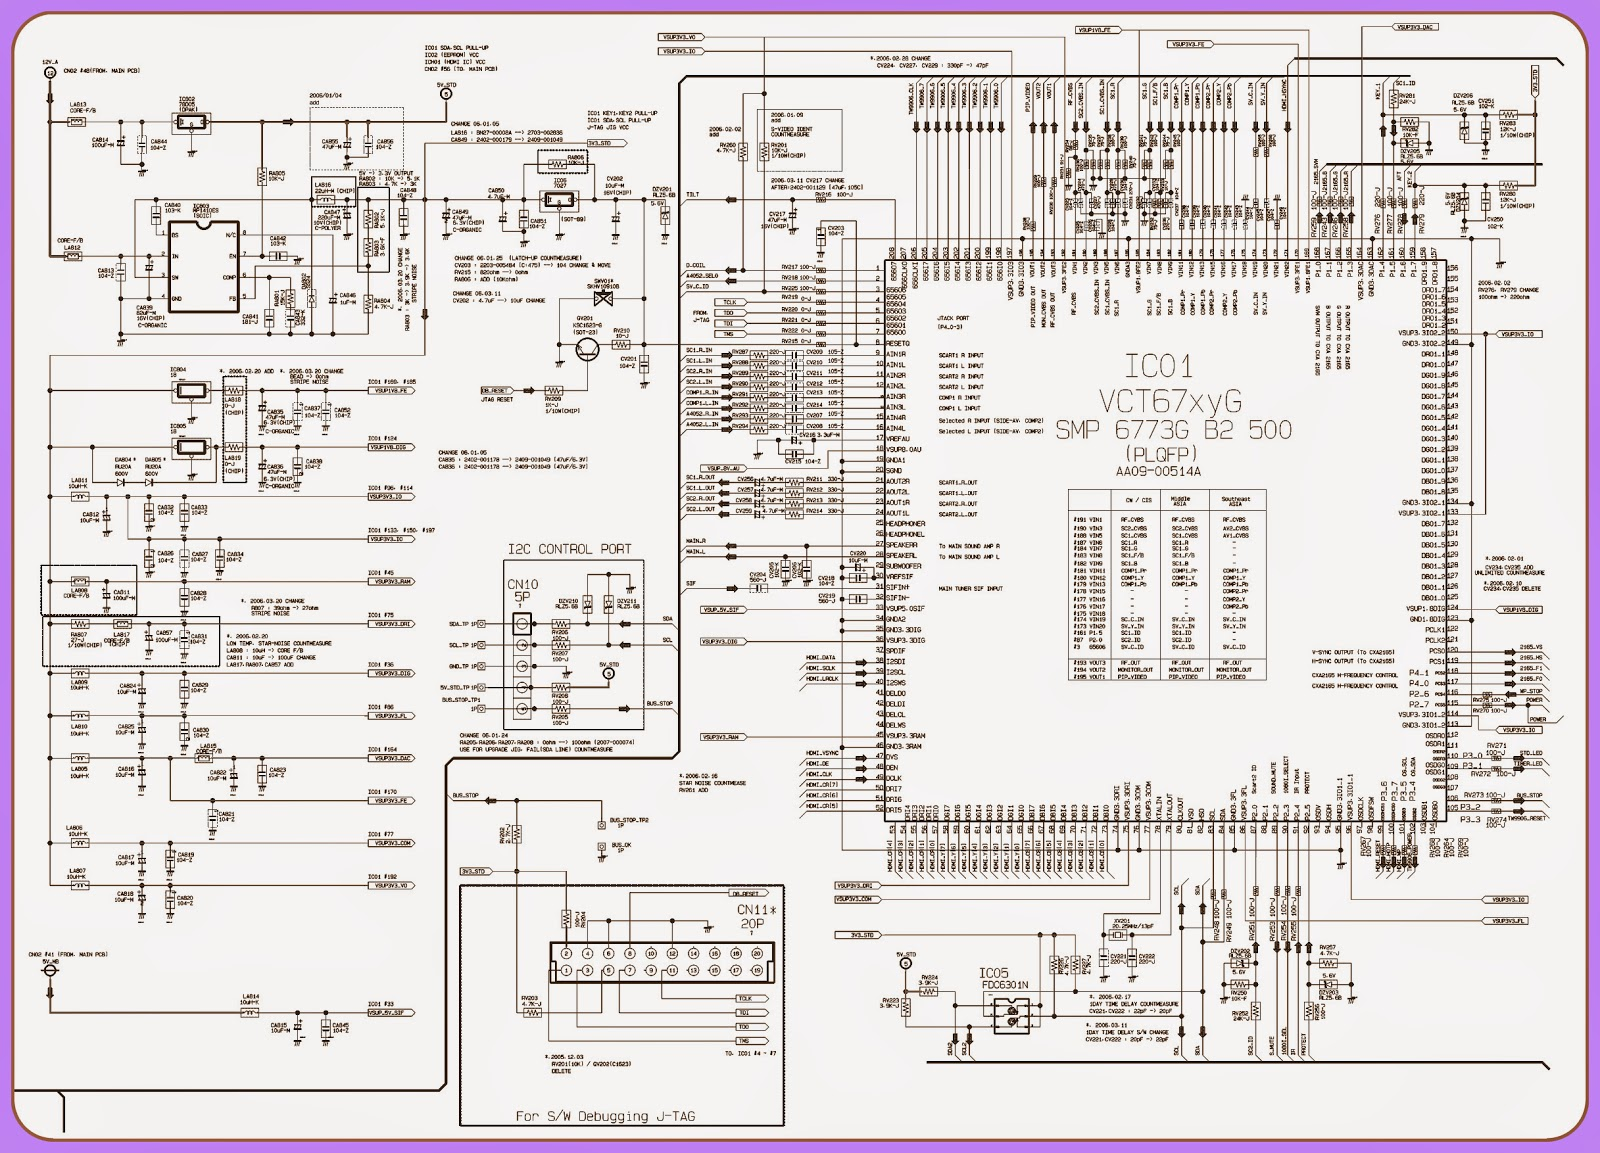 Samsung Led Tv Wiring Schematic Reinvent Your Diagram 3 Wire Man Fan Will Be A Thing U2022 Rh Exploreandmore Co Uk Latest Models Cable Connection